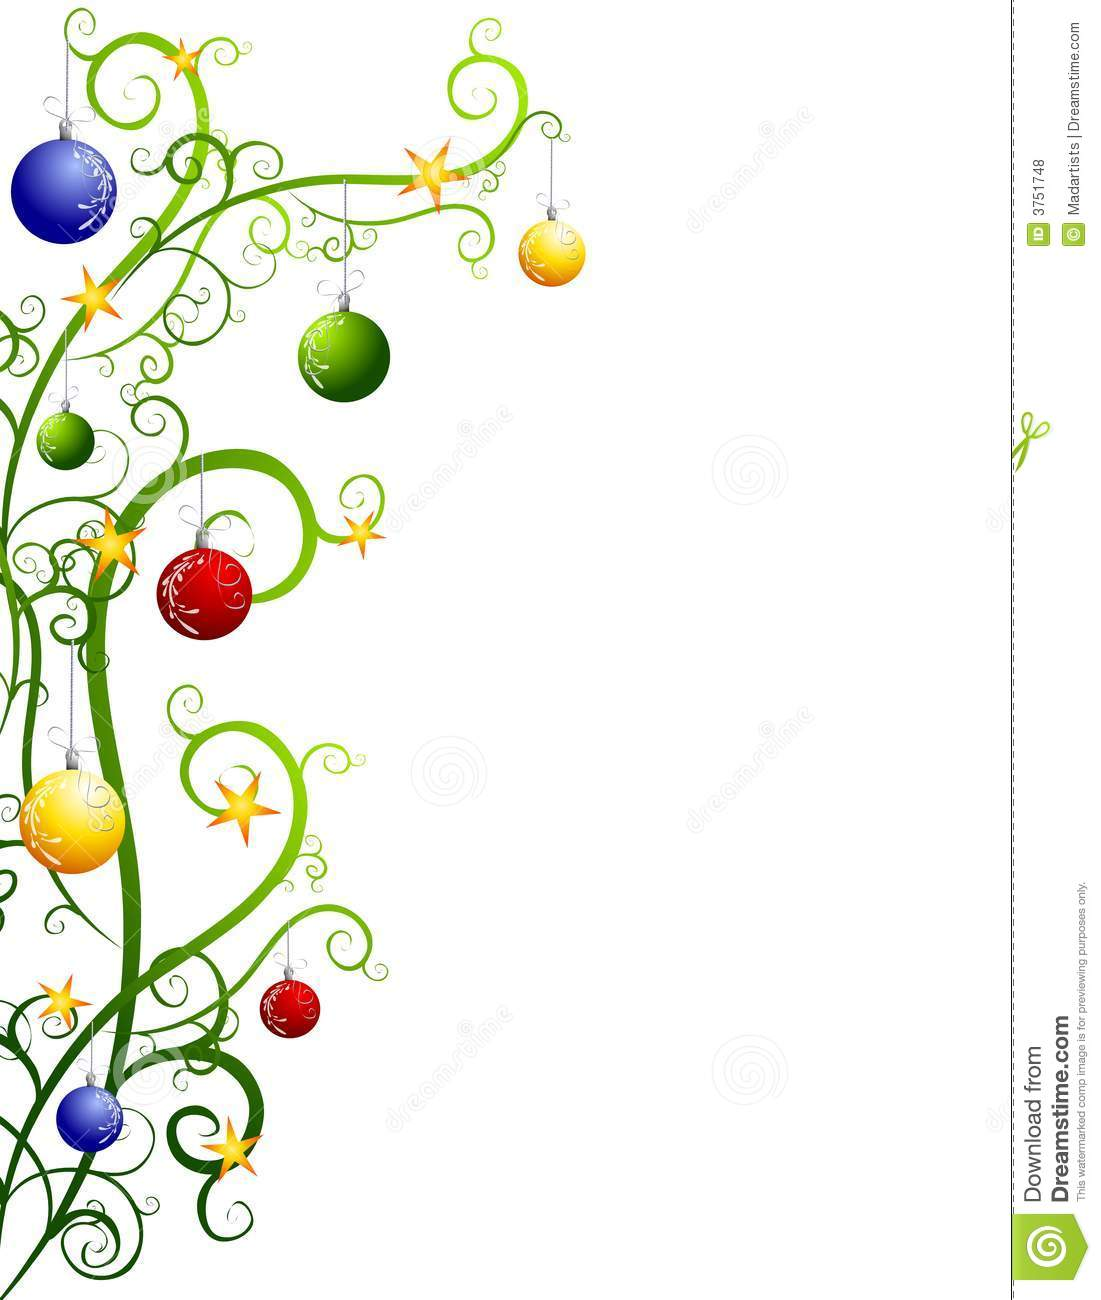 abstract christmas tree border with ornaments royalty free stock